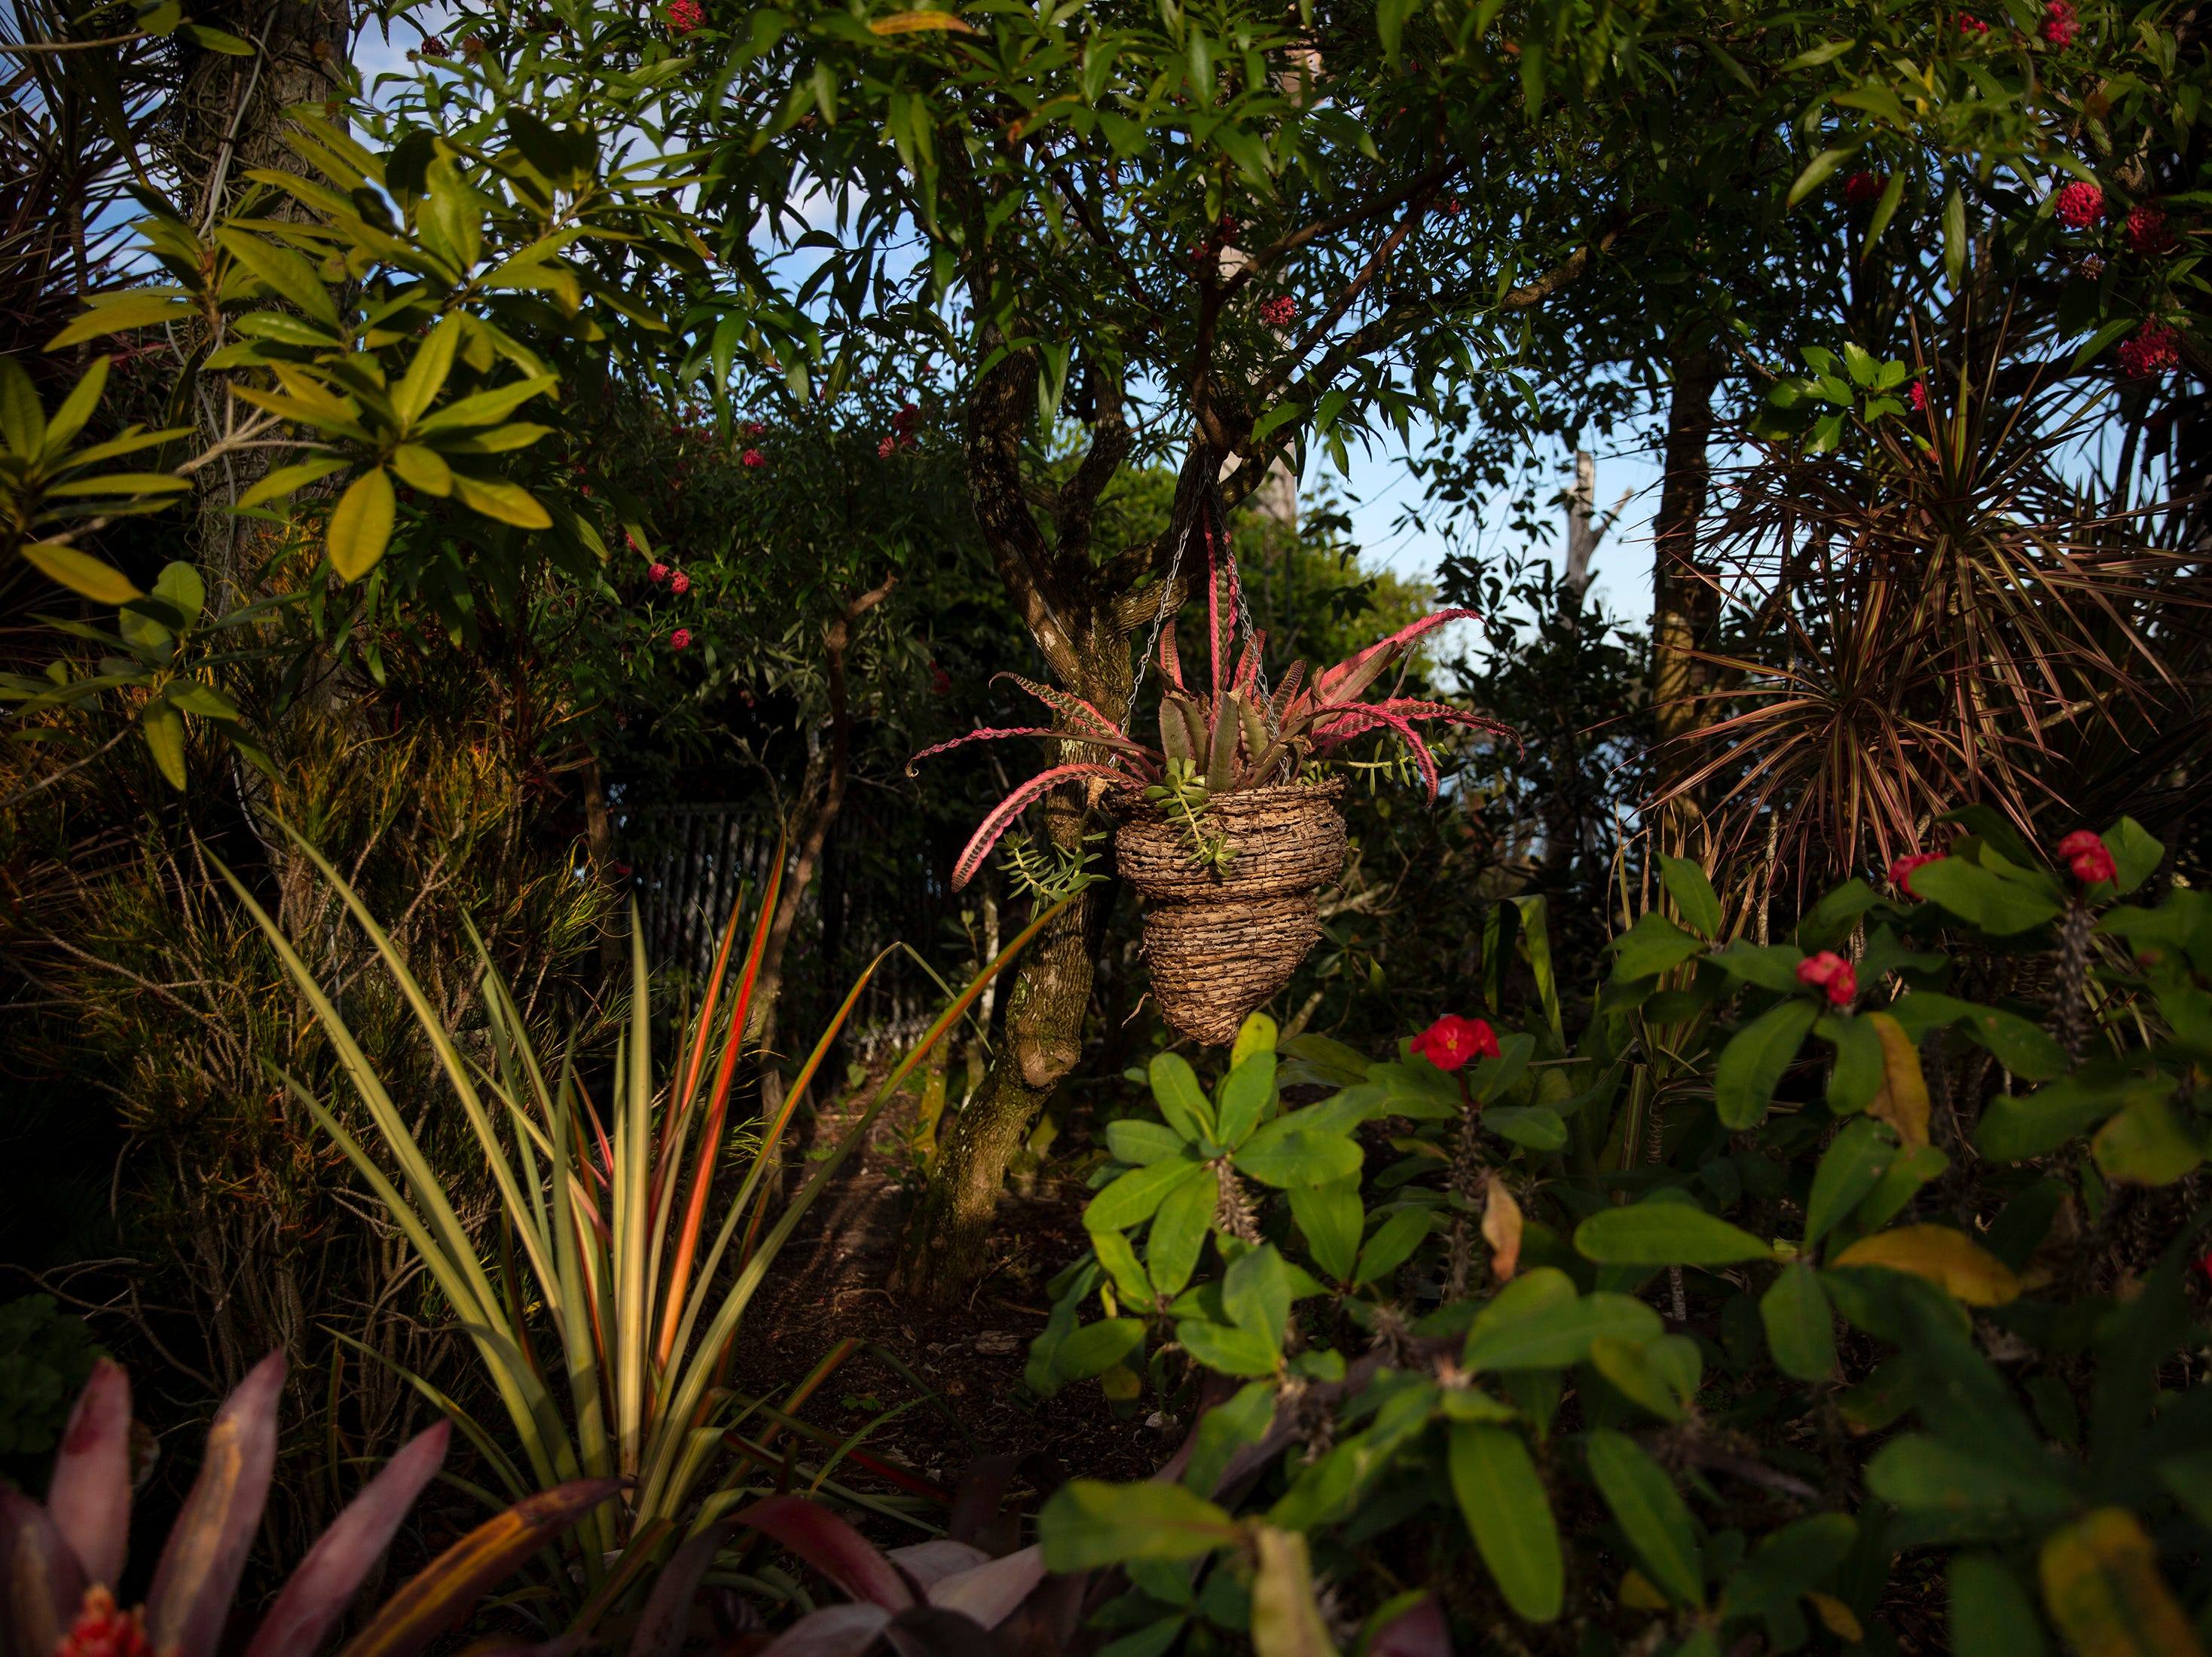 The tropical garden at the Aqualane Shores home which is featured in the Naples House and Garden Tour is pictured, Thursday, Jan. 24, 2019, in Naples.